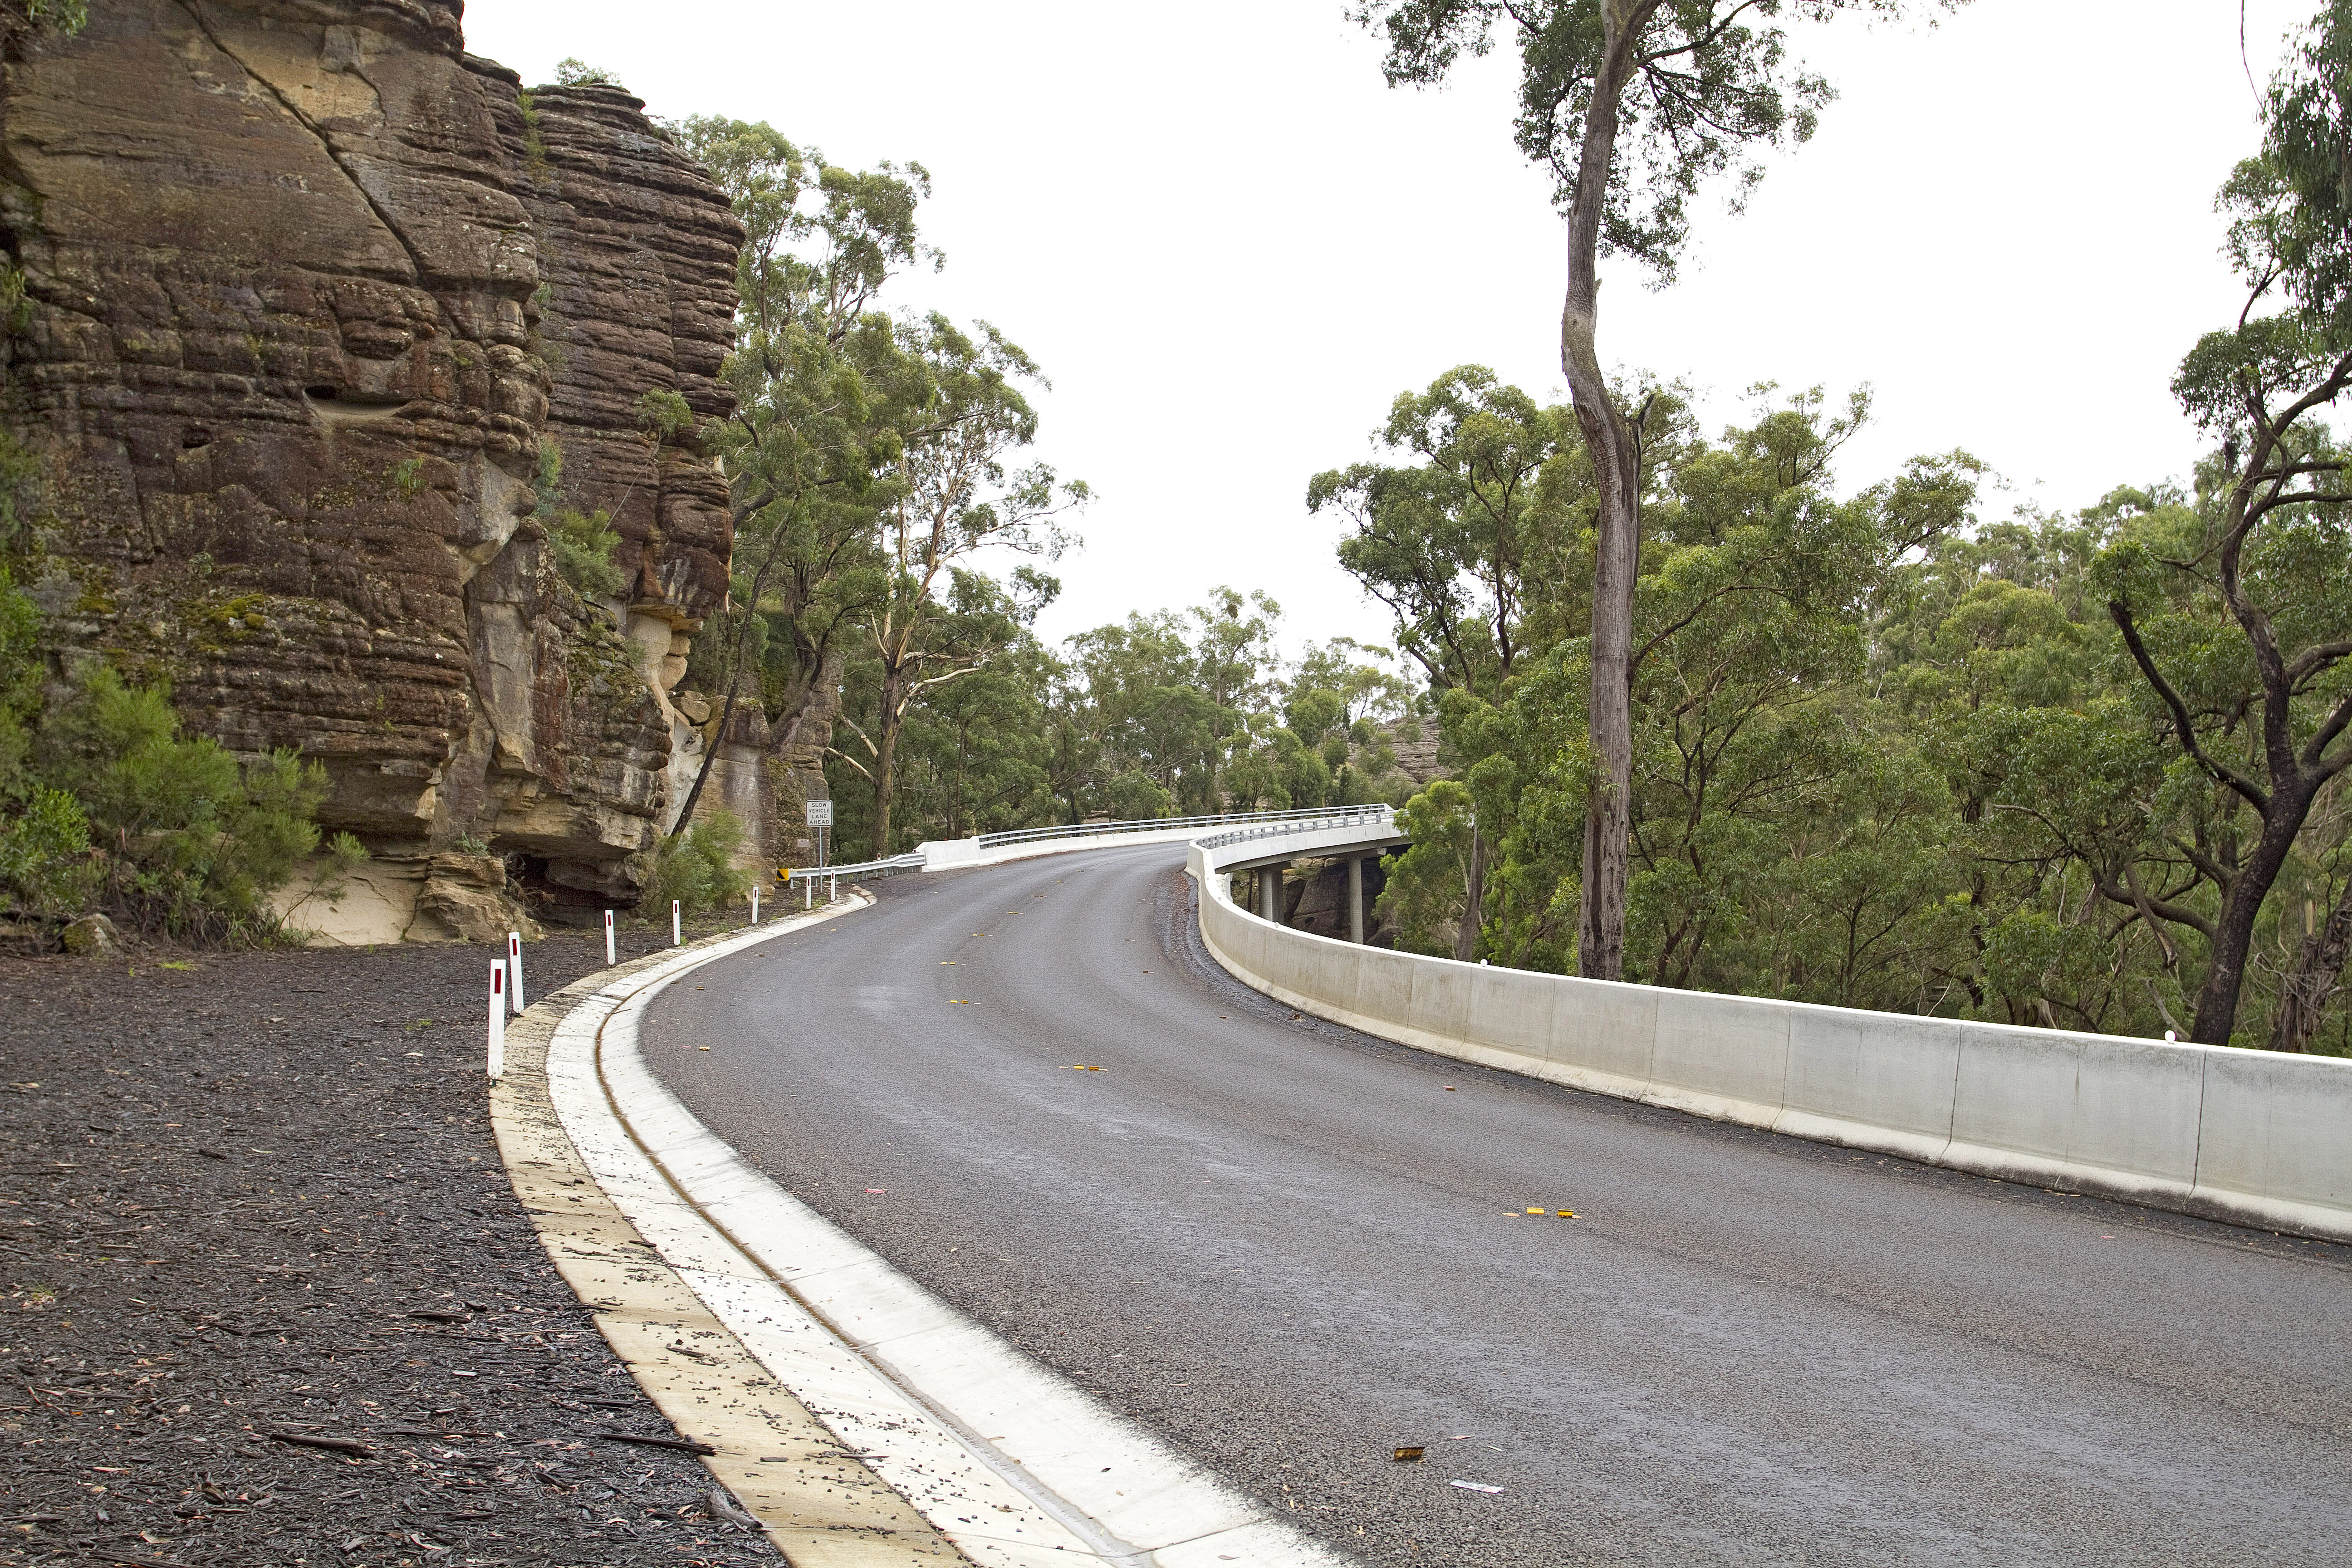 AMCN Rides - The Braidwood Road - Australian Motorcycle News